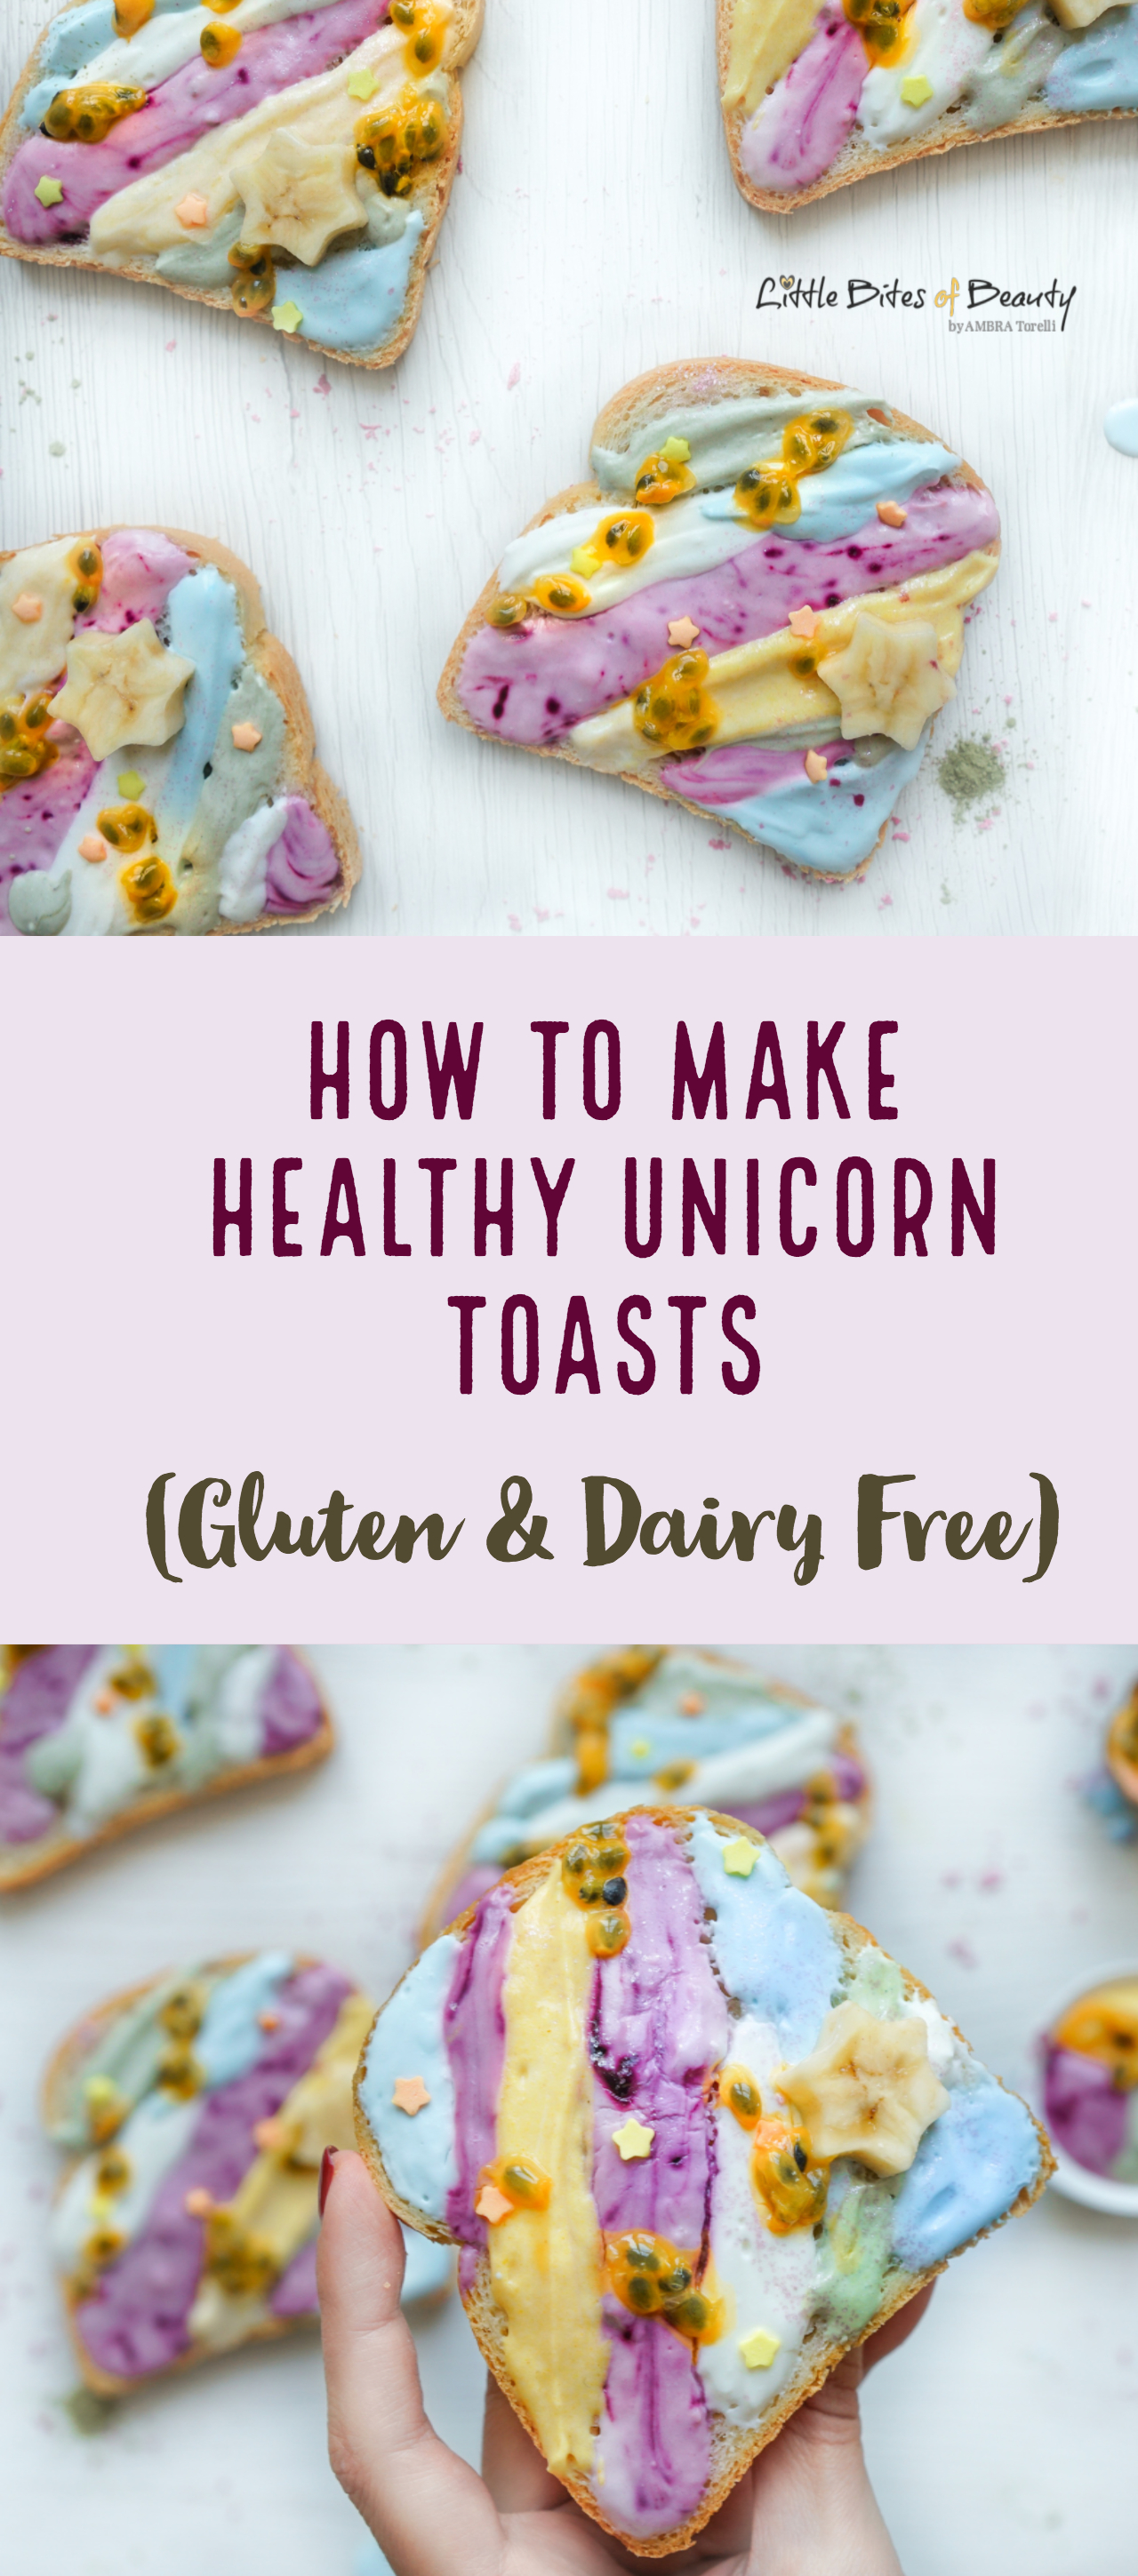 How to Make Healthy Unicorn Toasts (Gluten & Dairy Free)